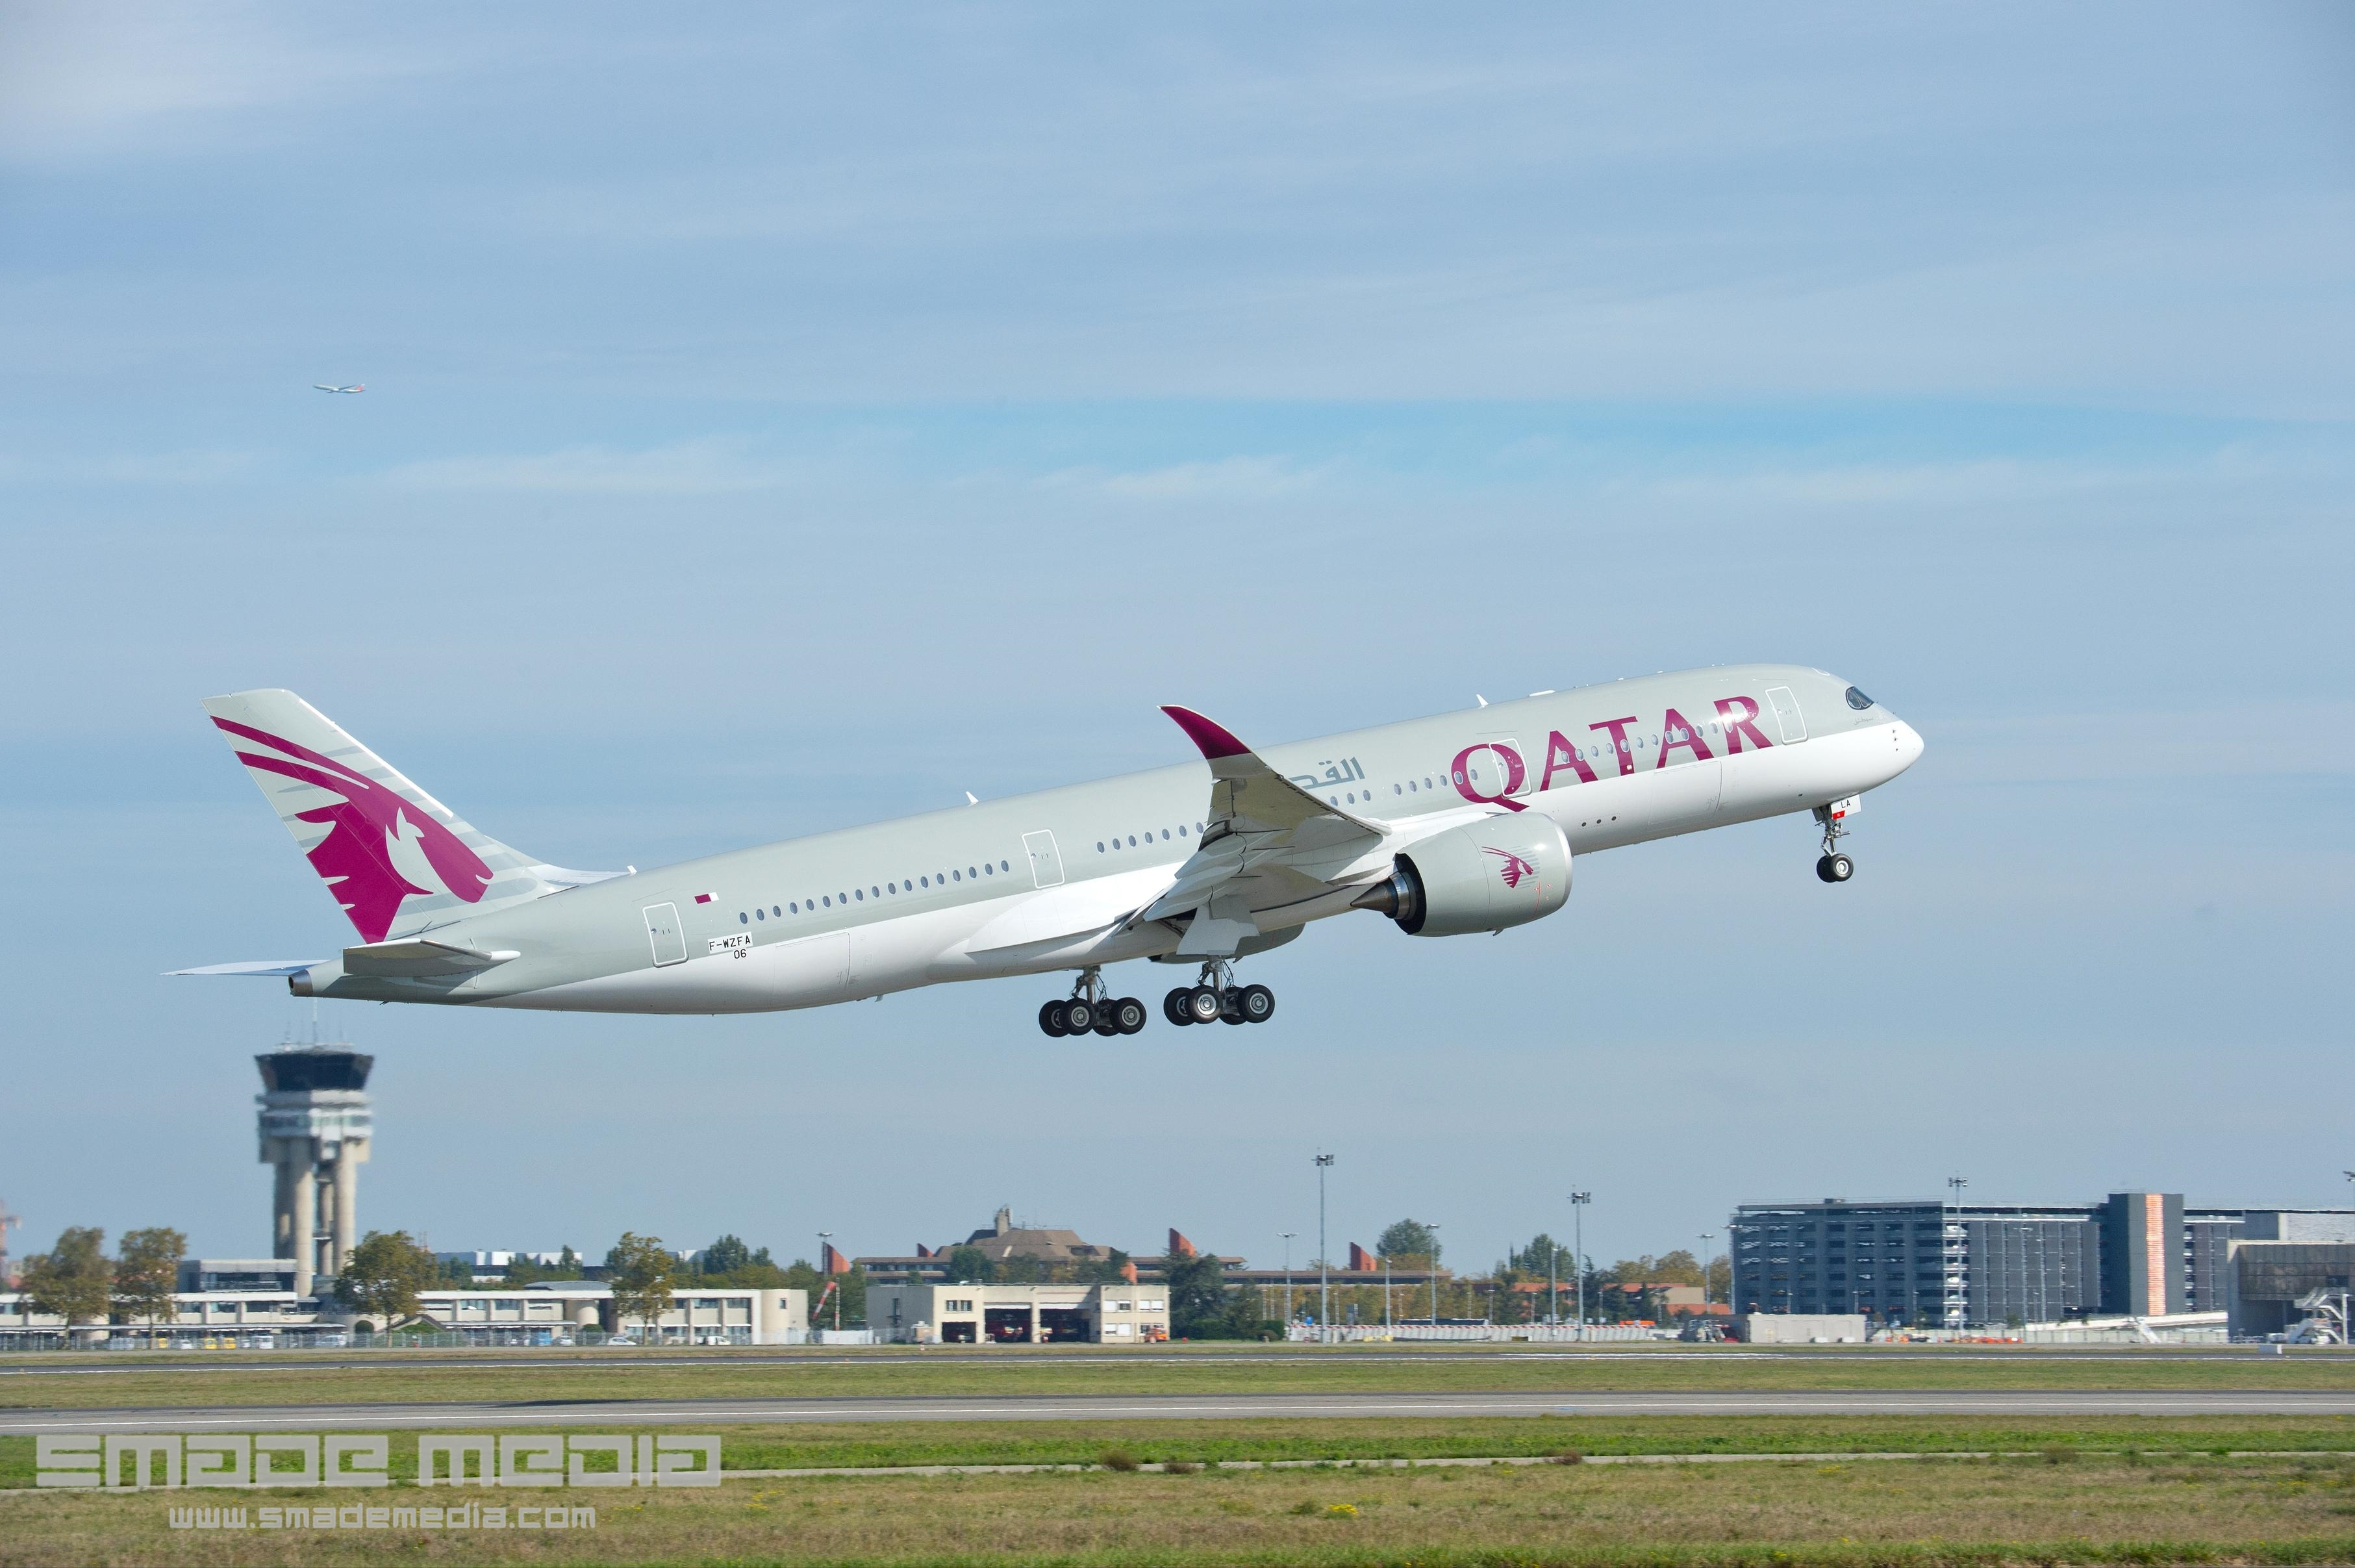 QATAR A350 Roll Out AND First Flight - SMADE MEDIA (7)